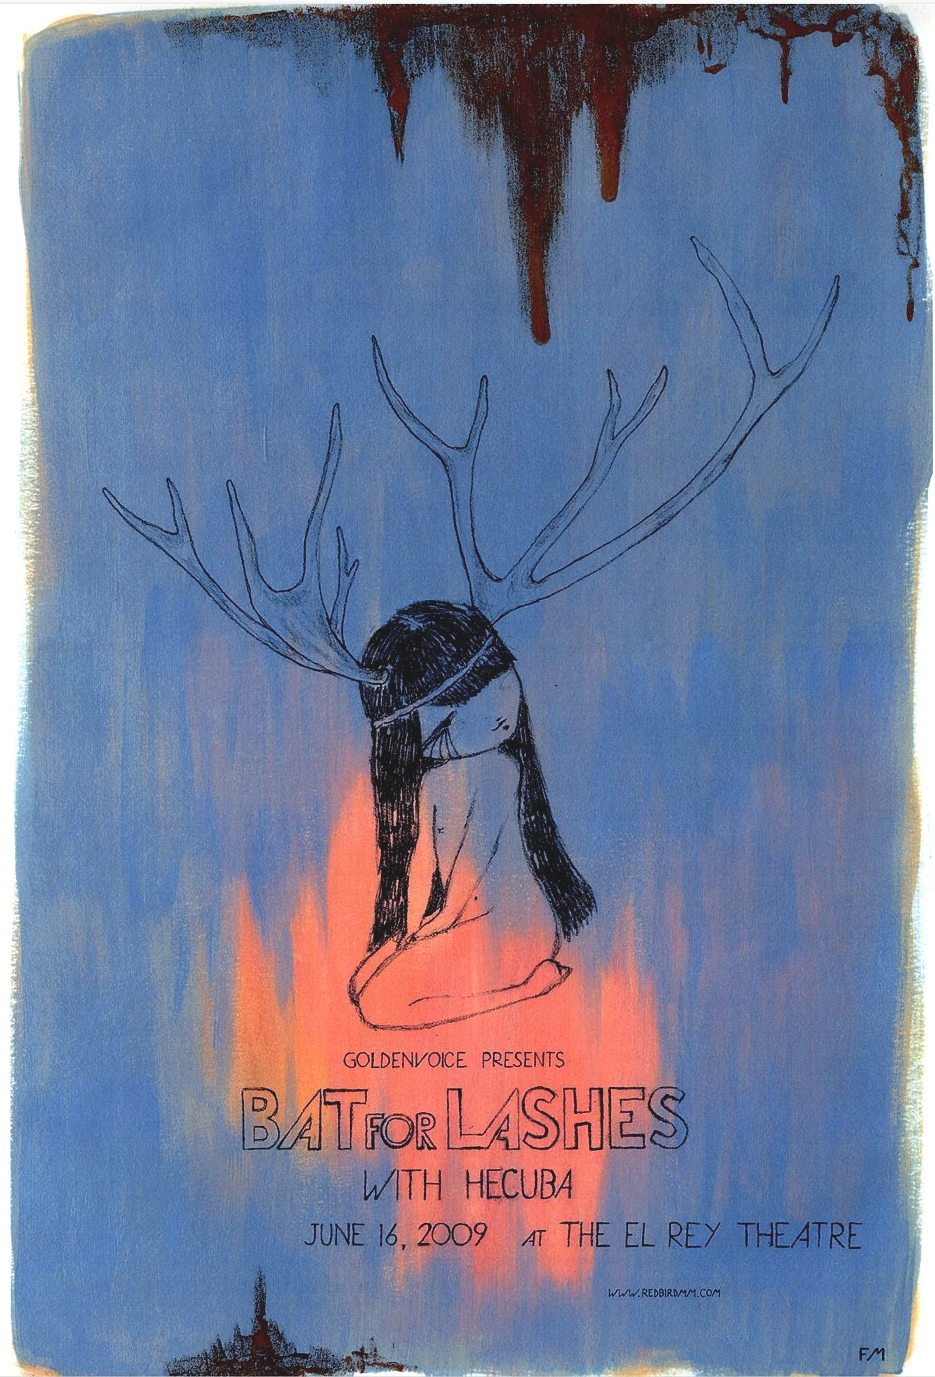 Bat for Lashes - Field day 2013 - image 1 - student project